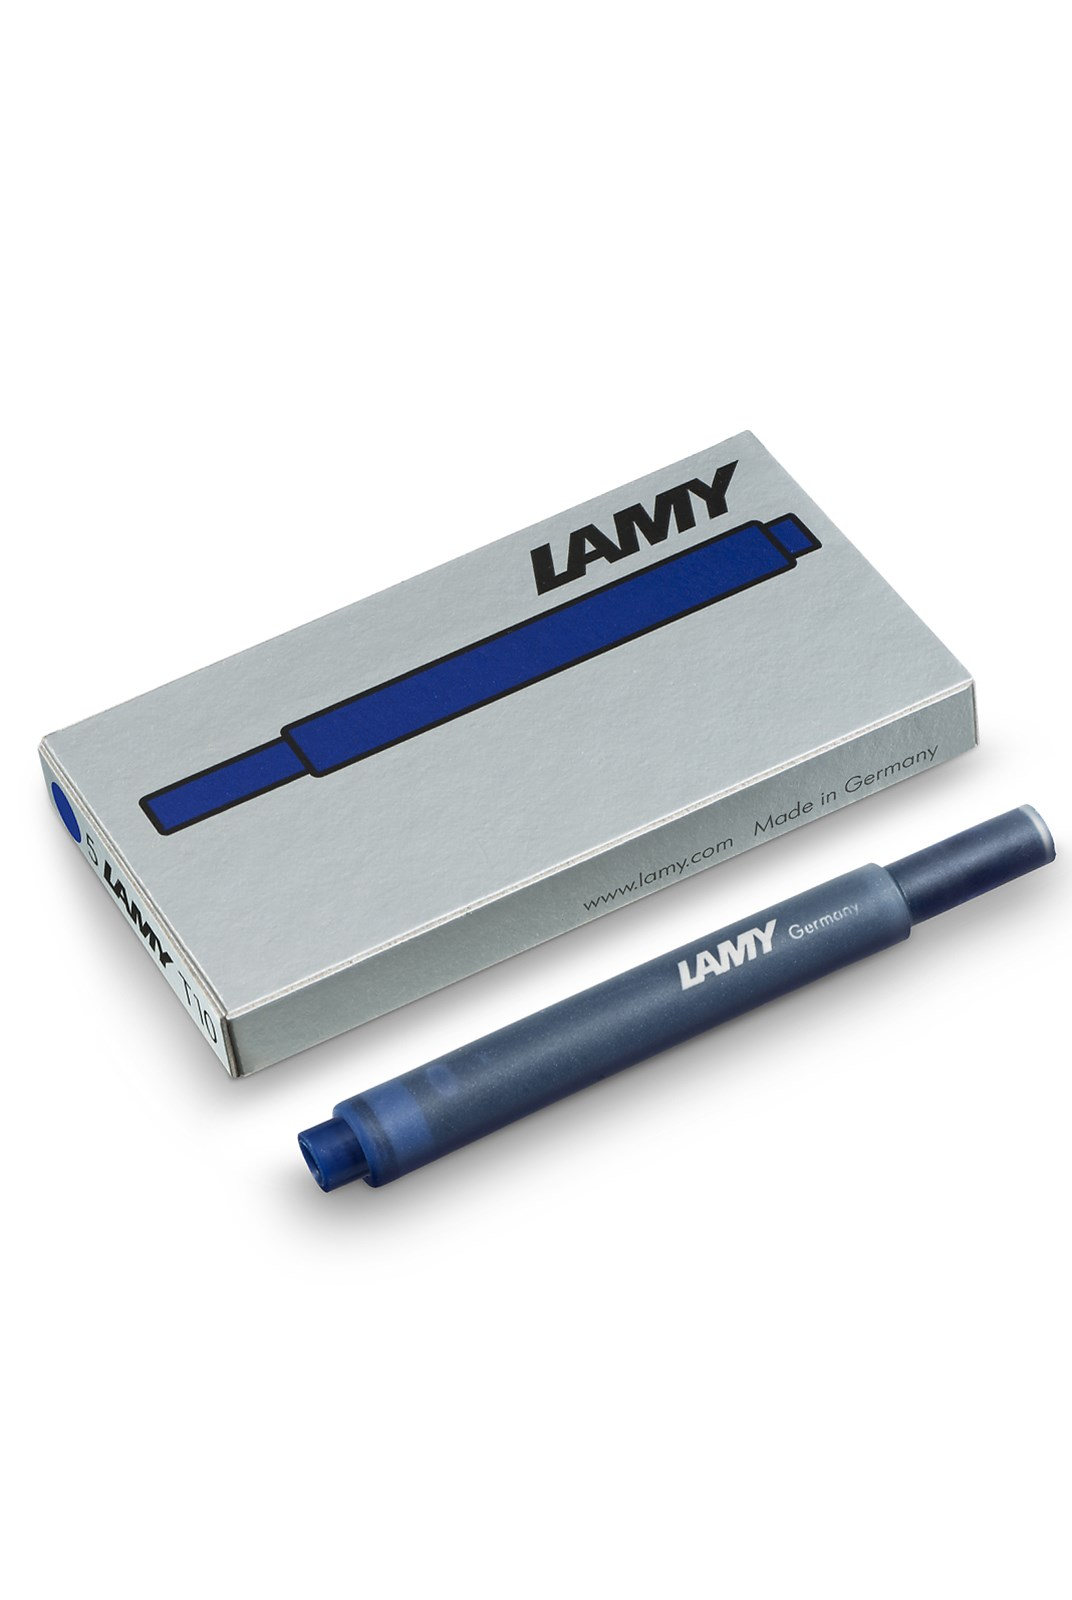 LAMY - T10 Fountain Pen Ink Cartridges - Pack of 5 - Blue-Black